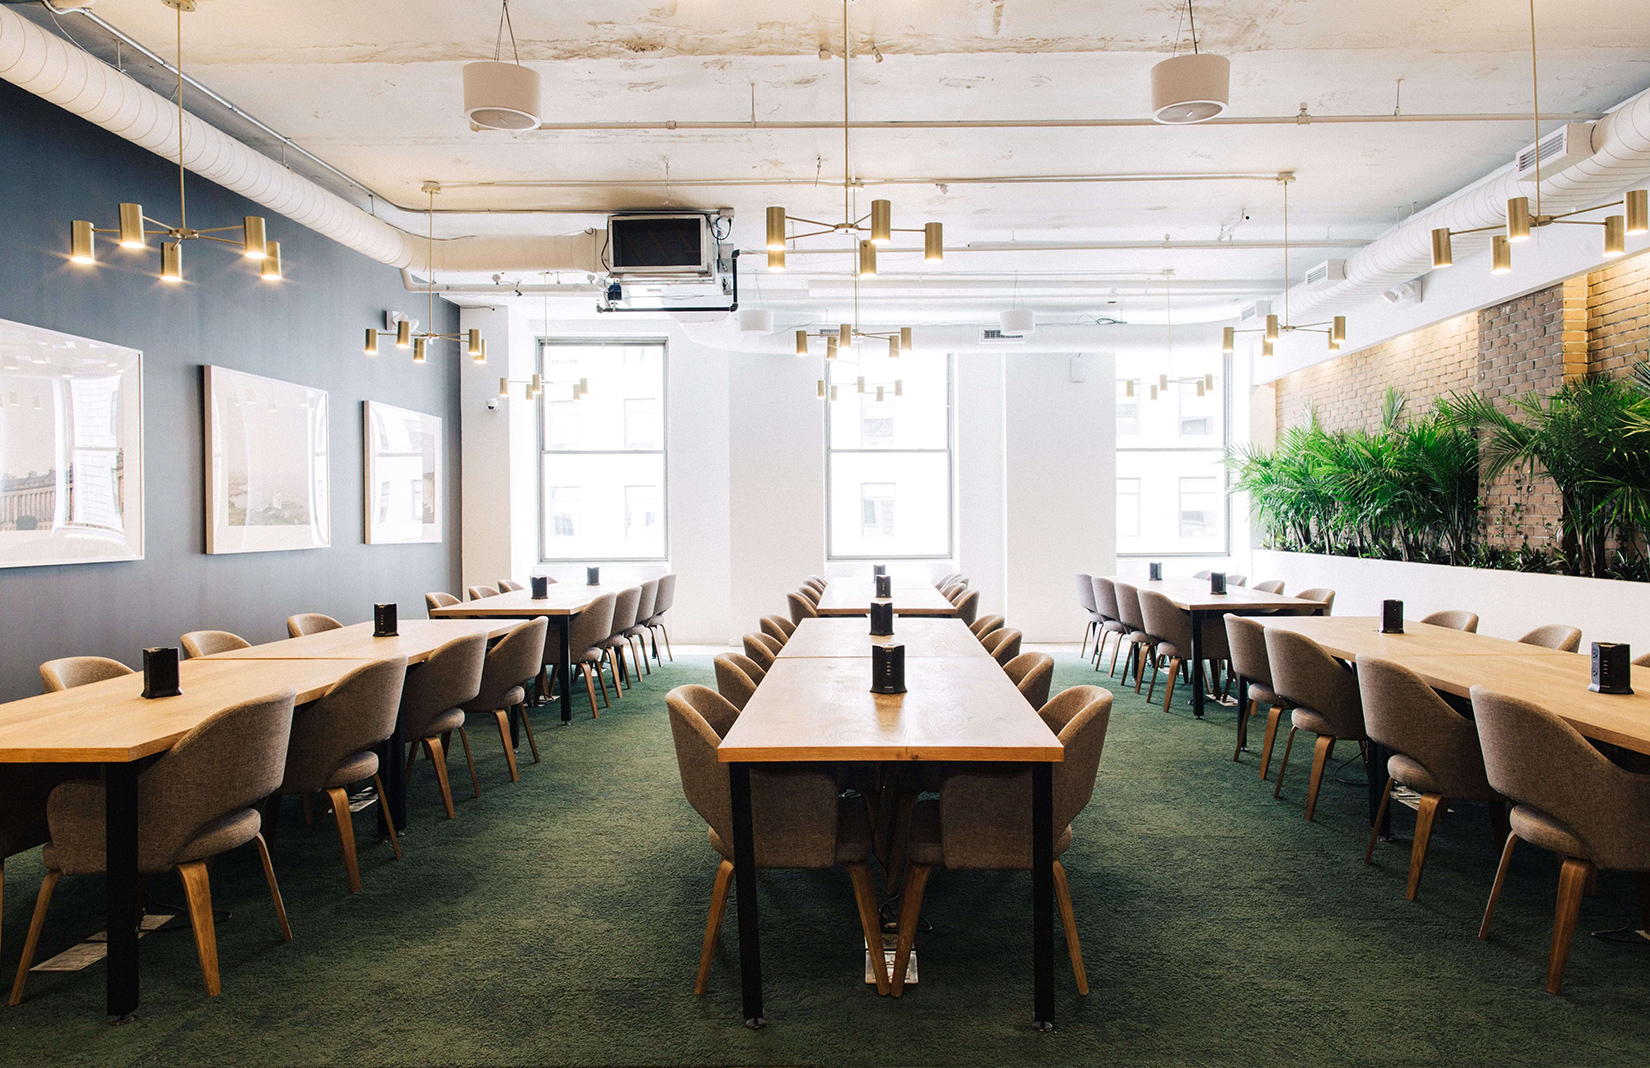 Primary coworking space in NYC